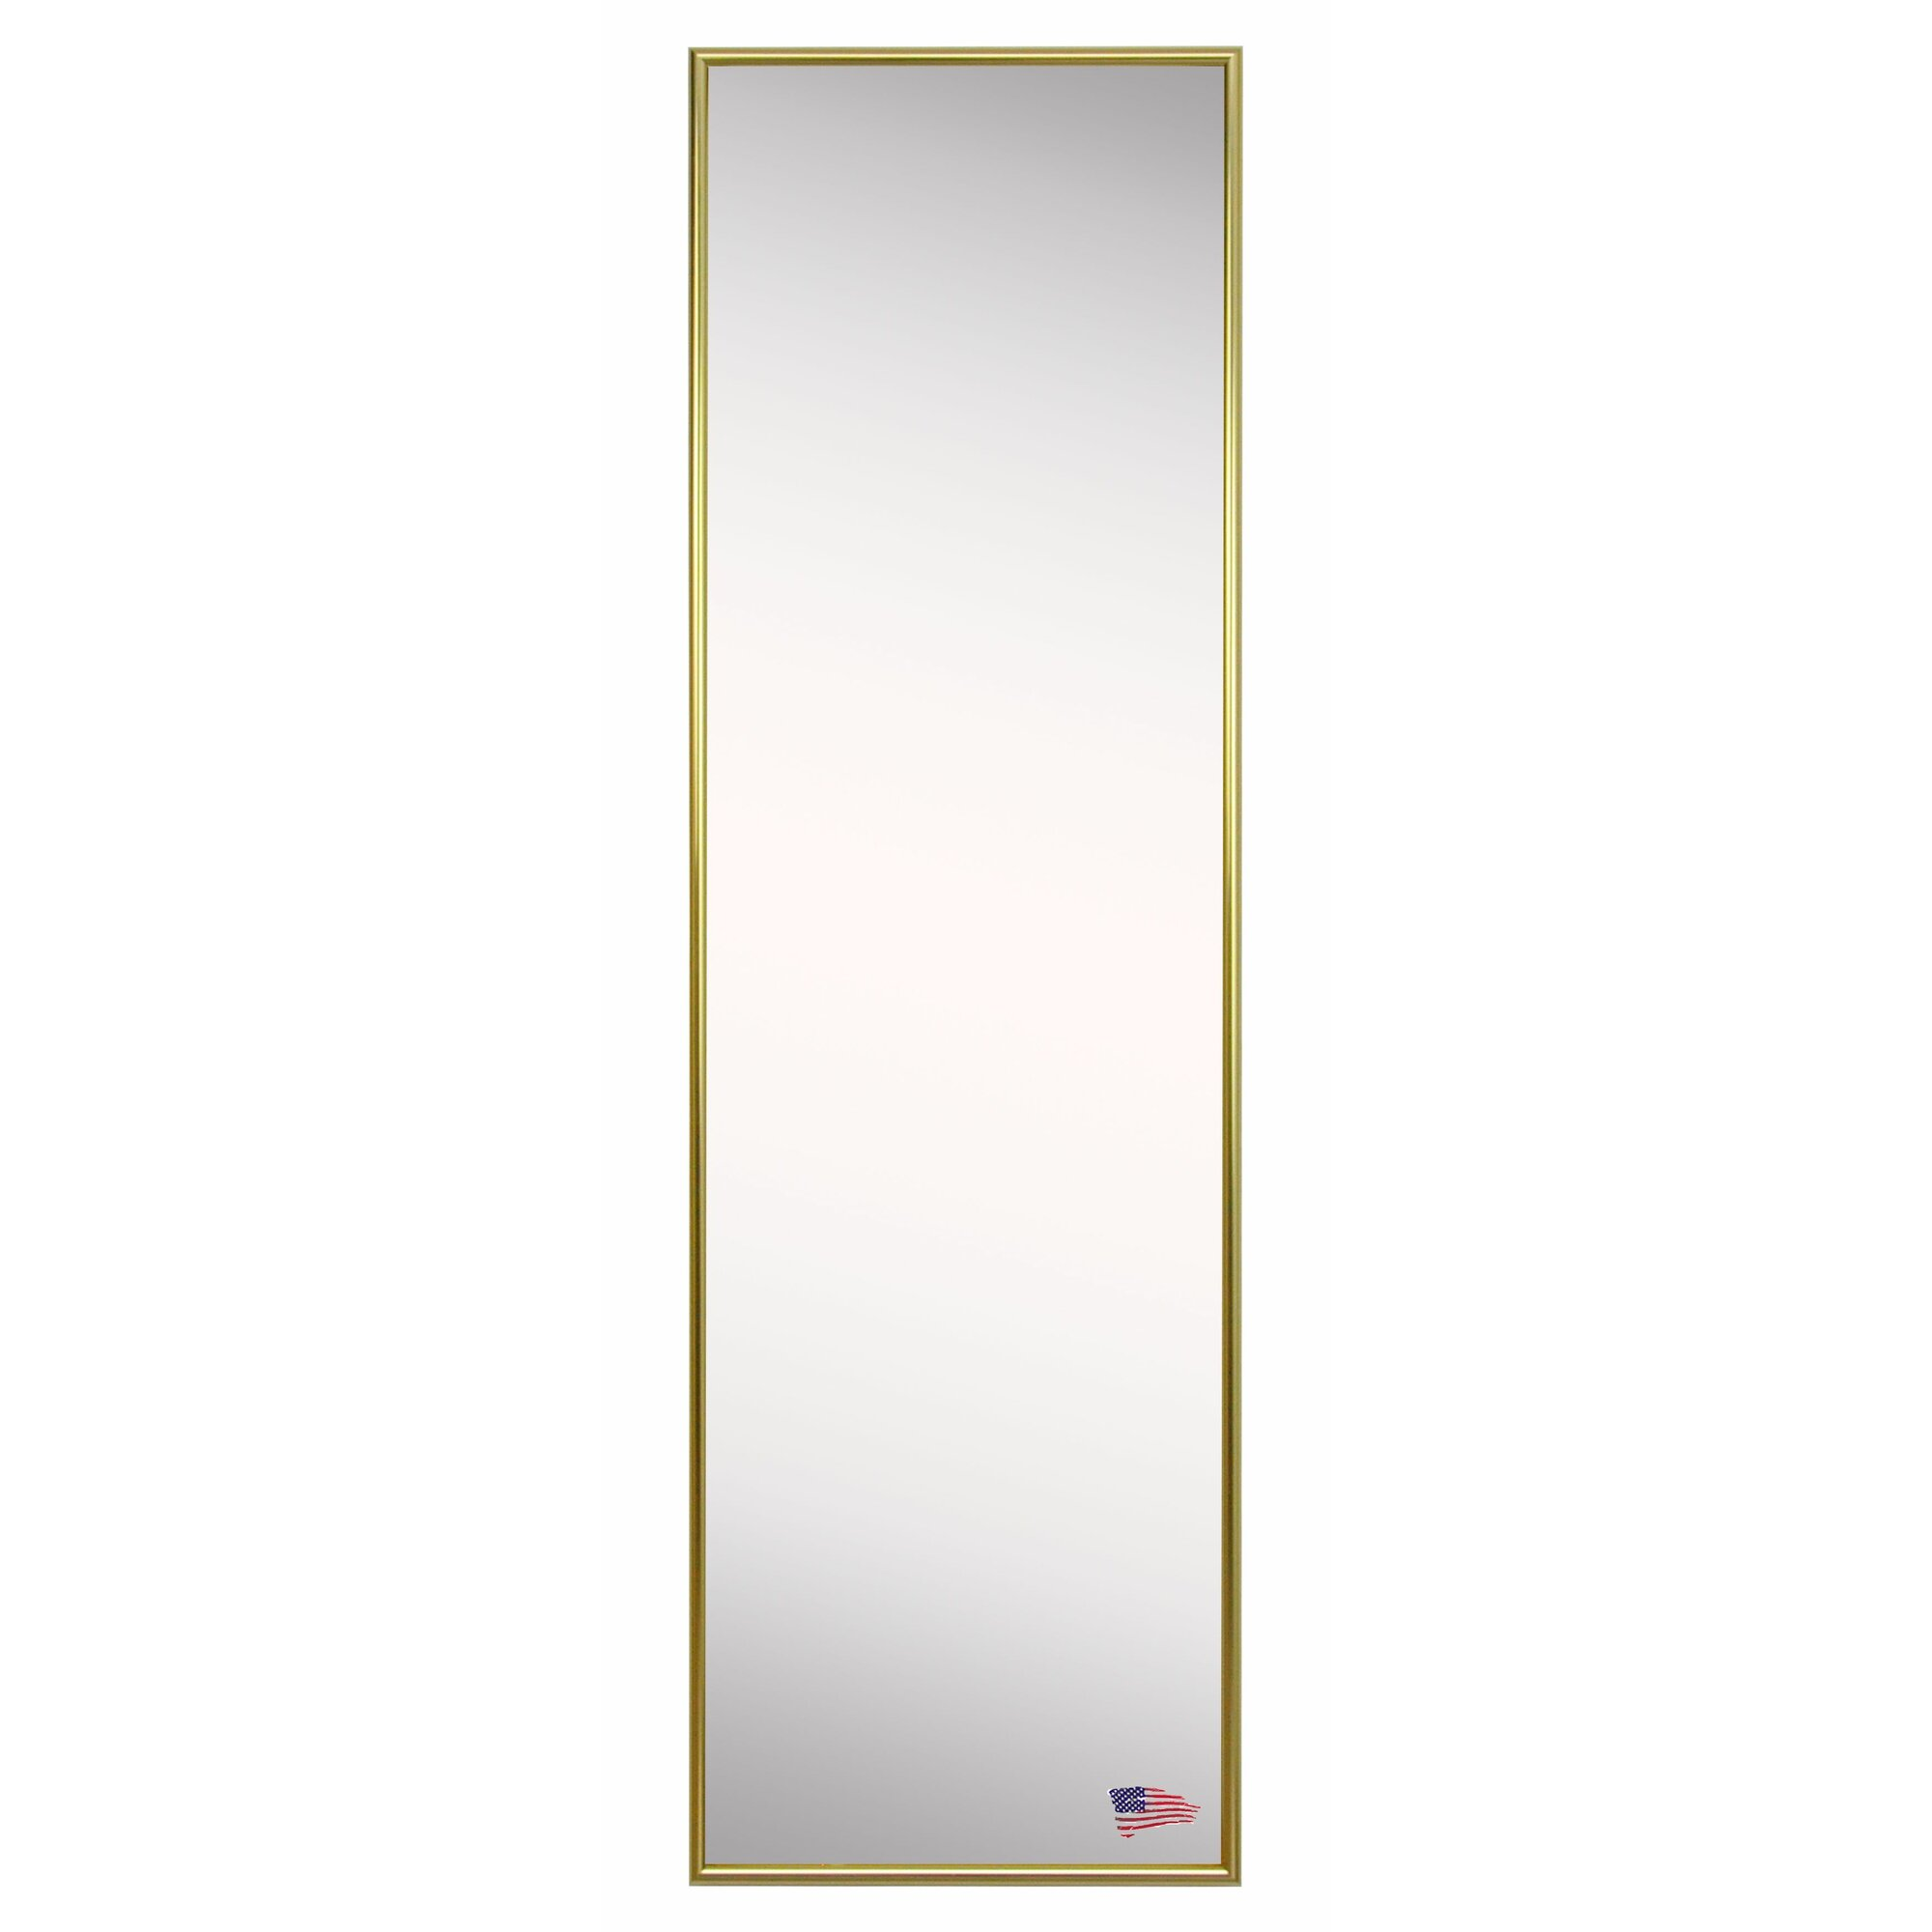 Darby home co rectangle gold floor mirror for Gold standing mirror